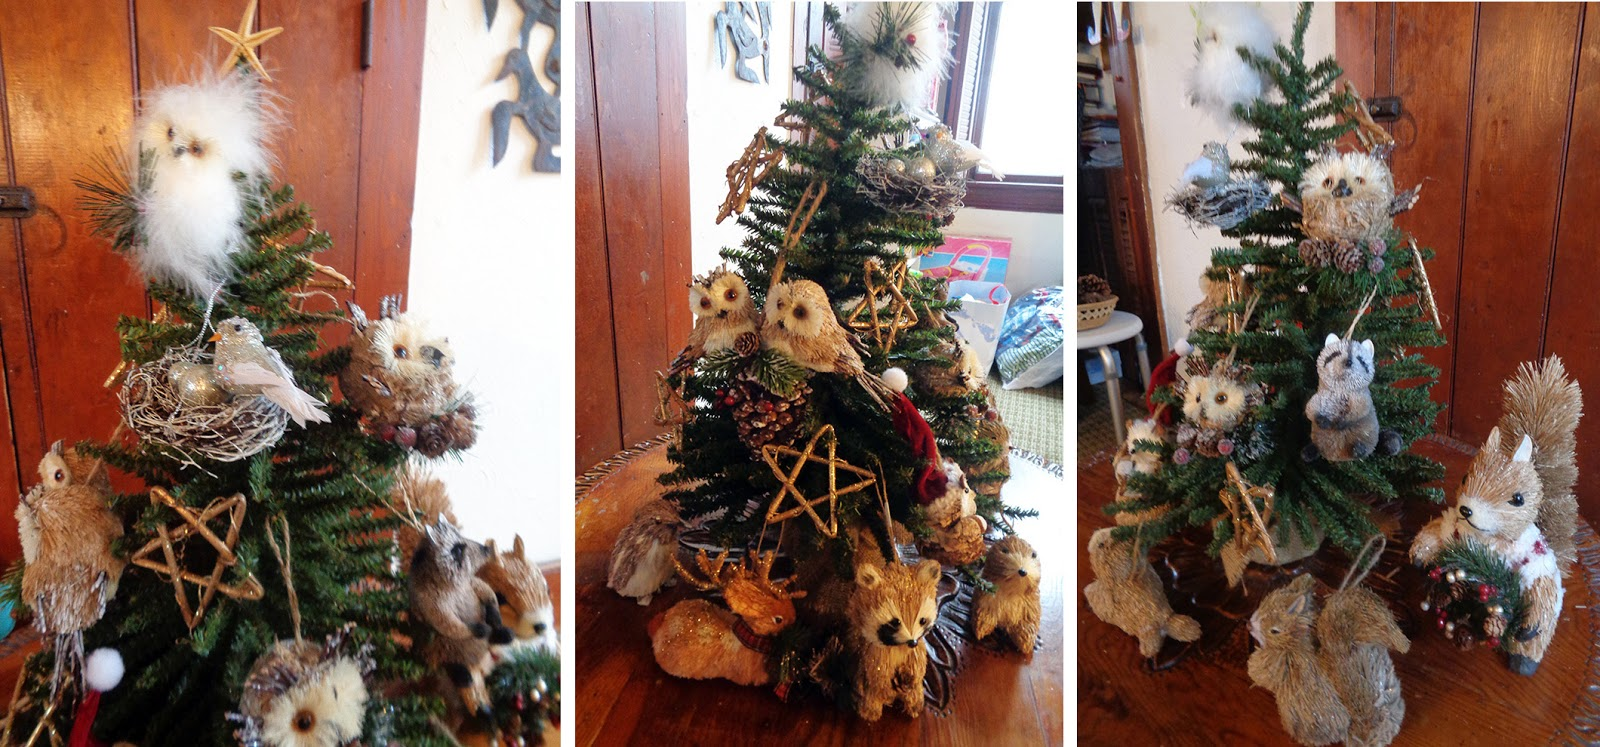 And Here Below Is The Little White Tree I Decorated With My Hammered,  Painted Tin Ornaments From Mexico And The Lacqueronwood (i Think)  Ornaments From